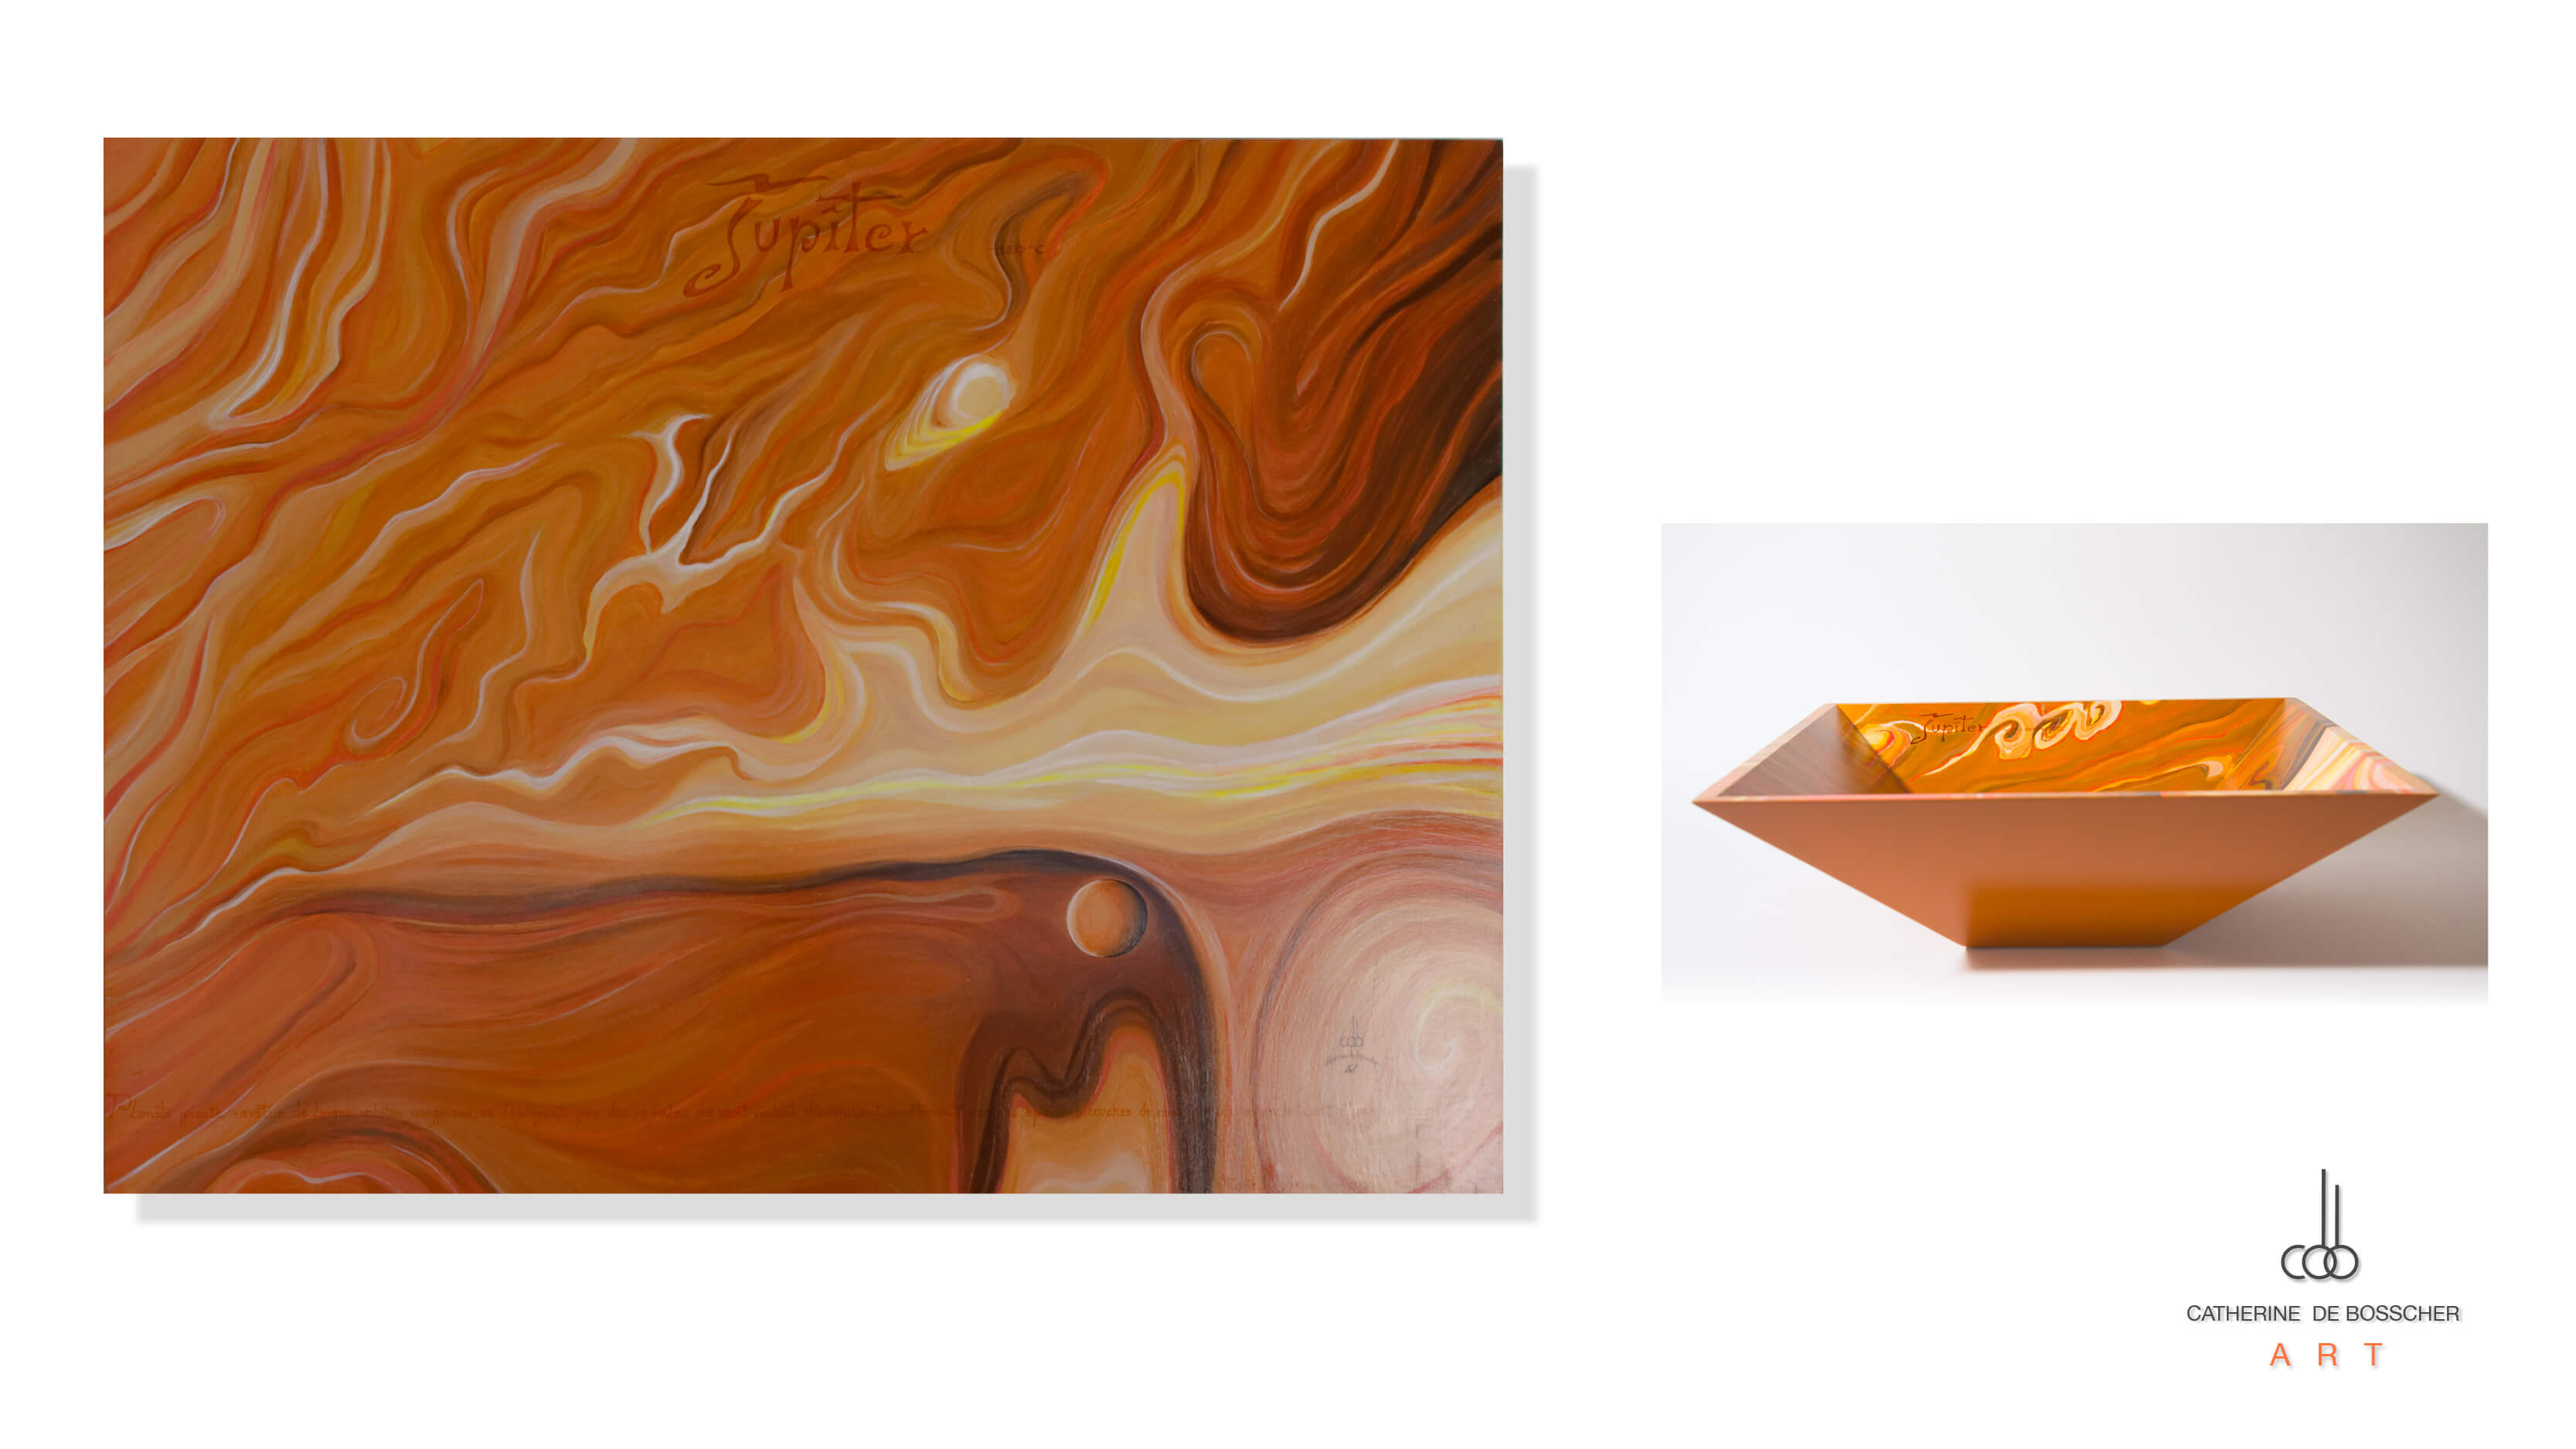 """Planète Jupiter"" painting and pyramidal bowl by Catherine De Bosscher"